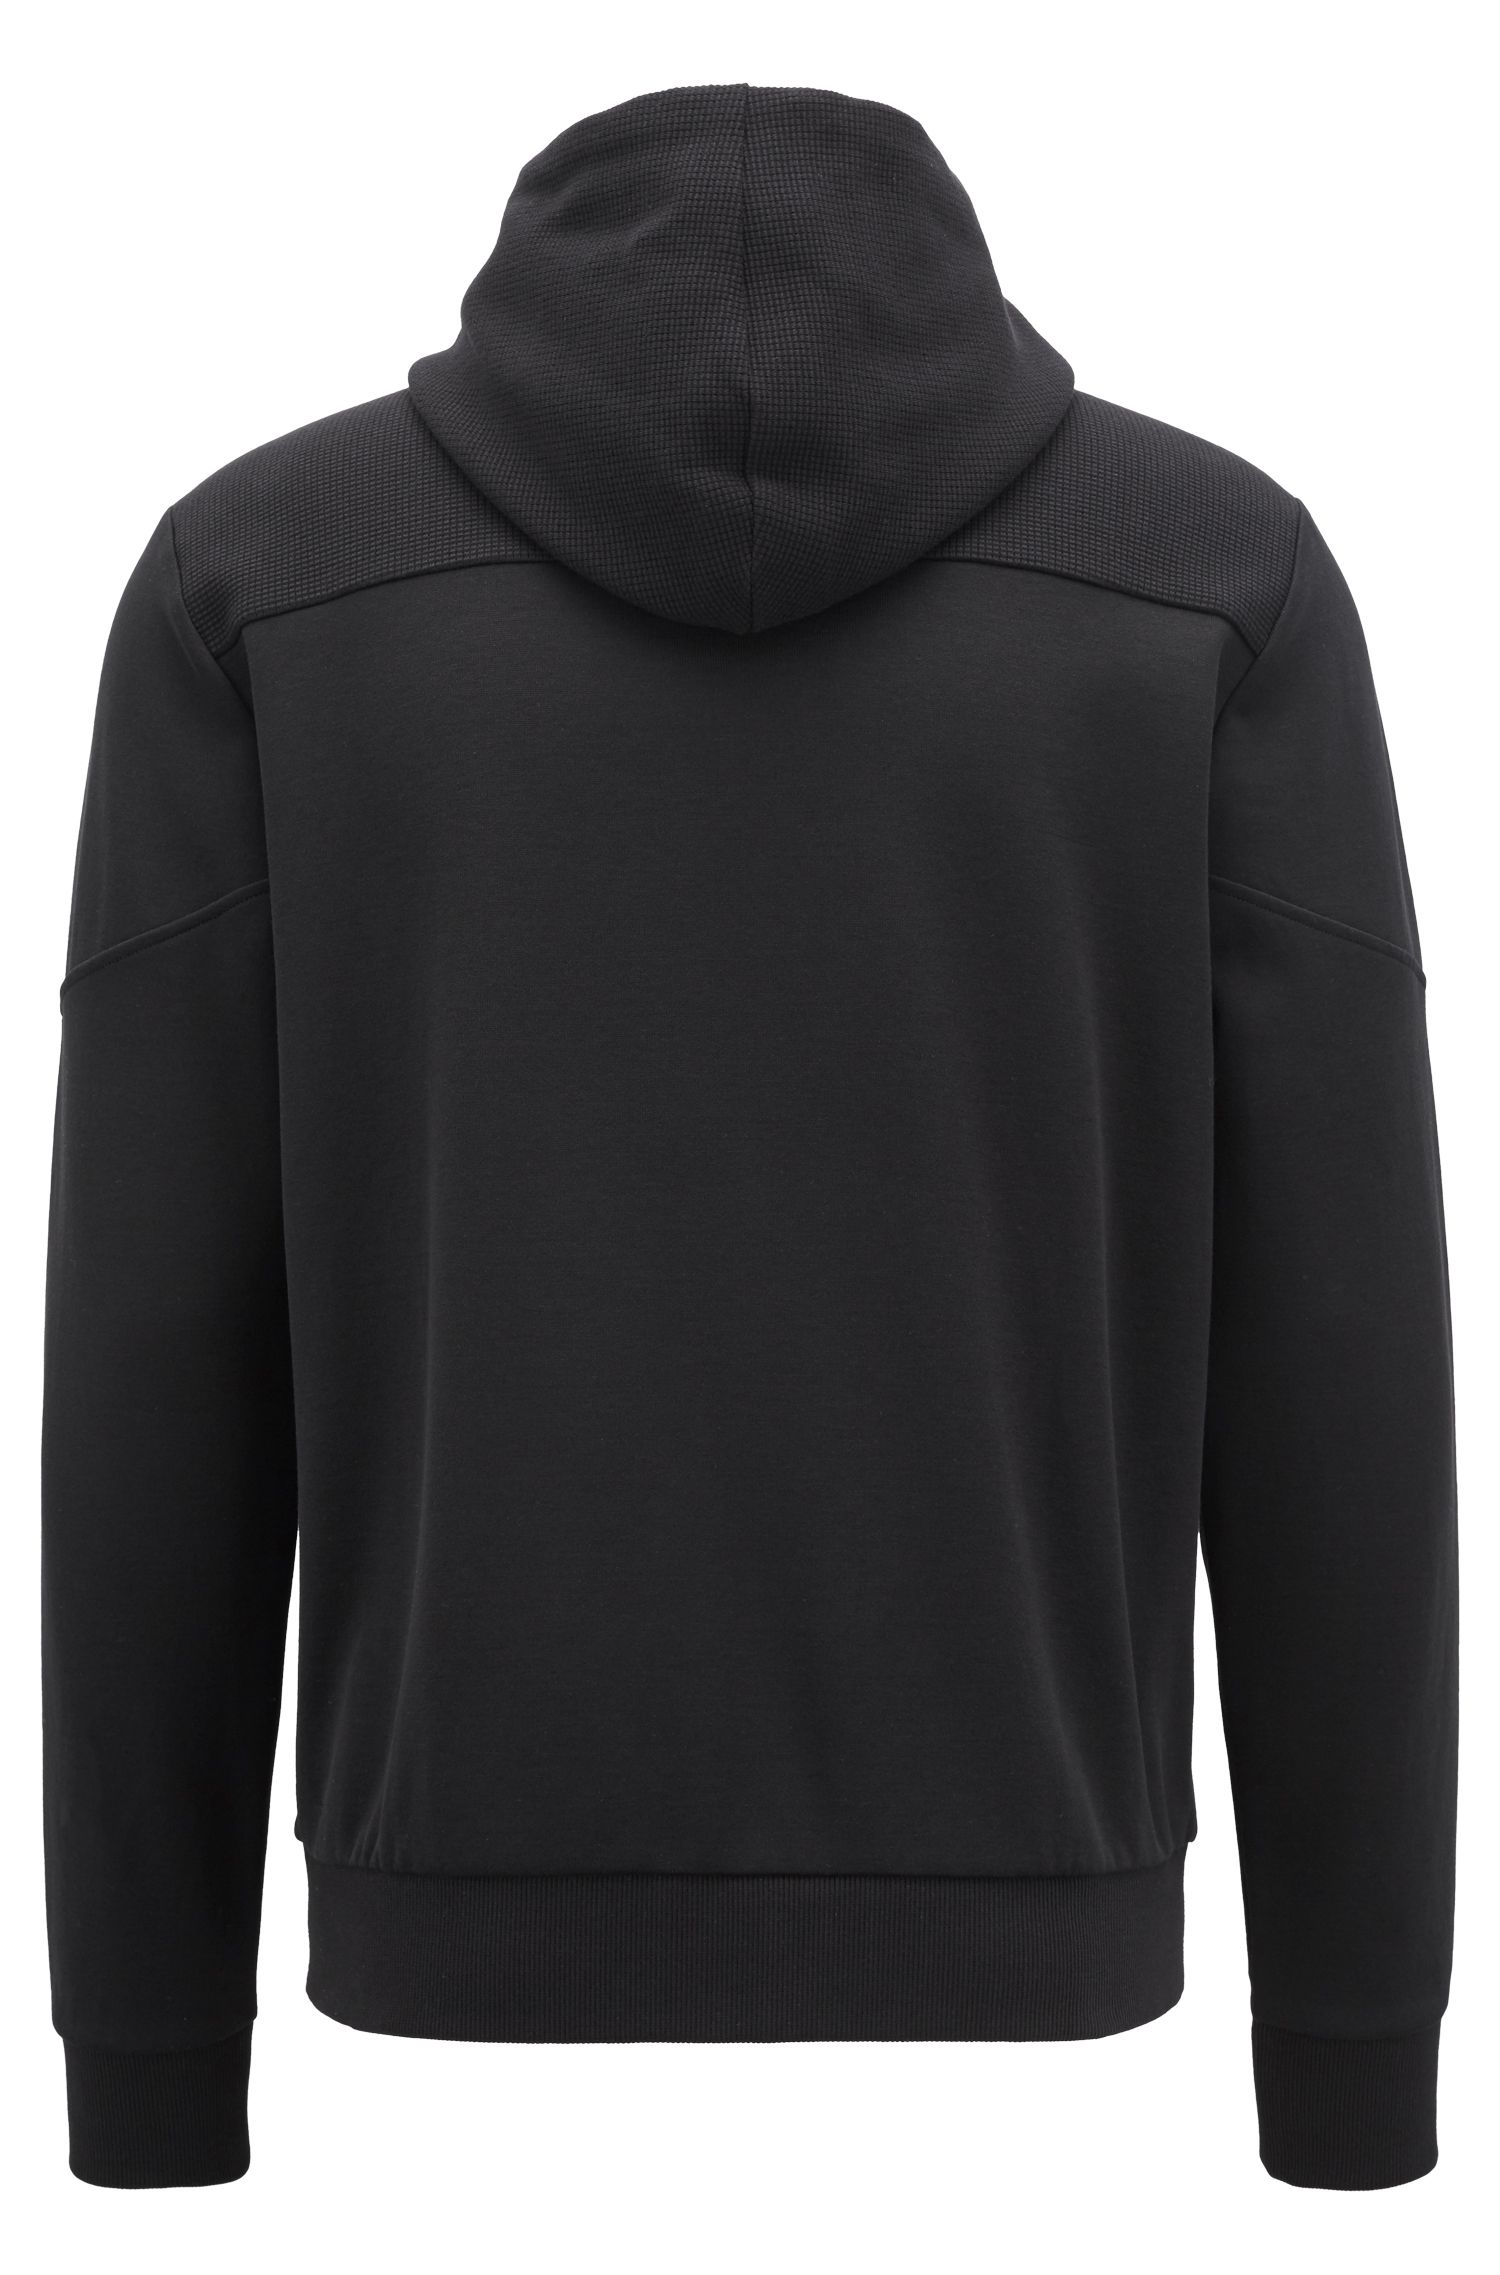 Hooded sweatshirt with contrast zipper and logo detail